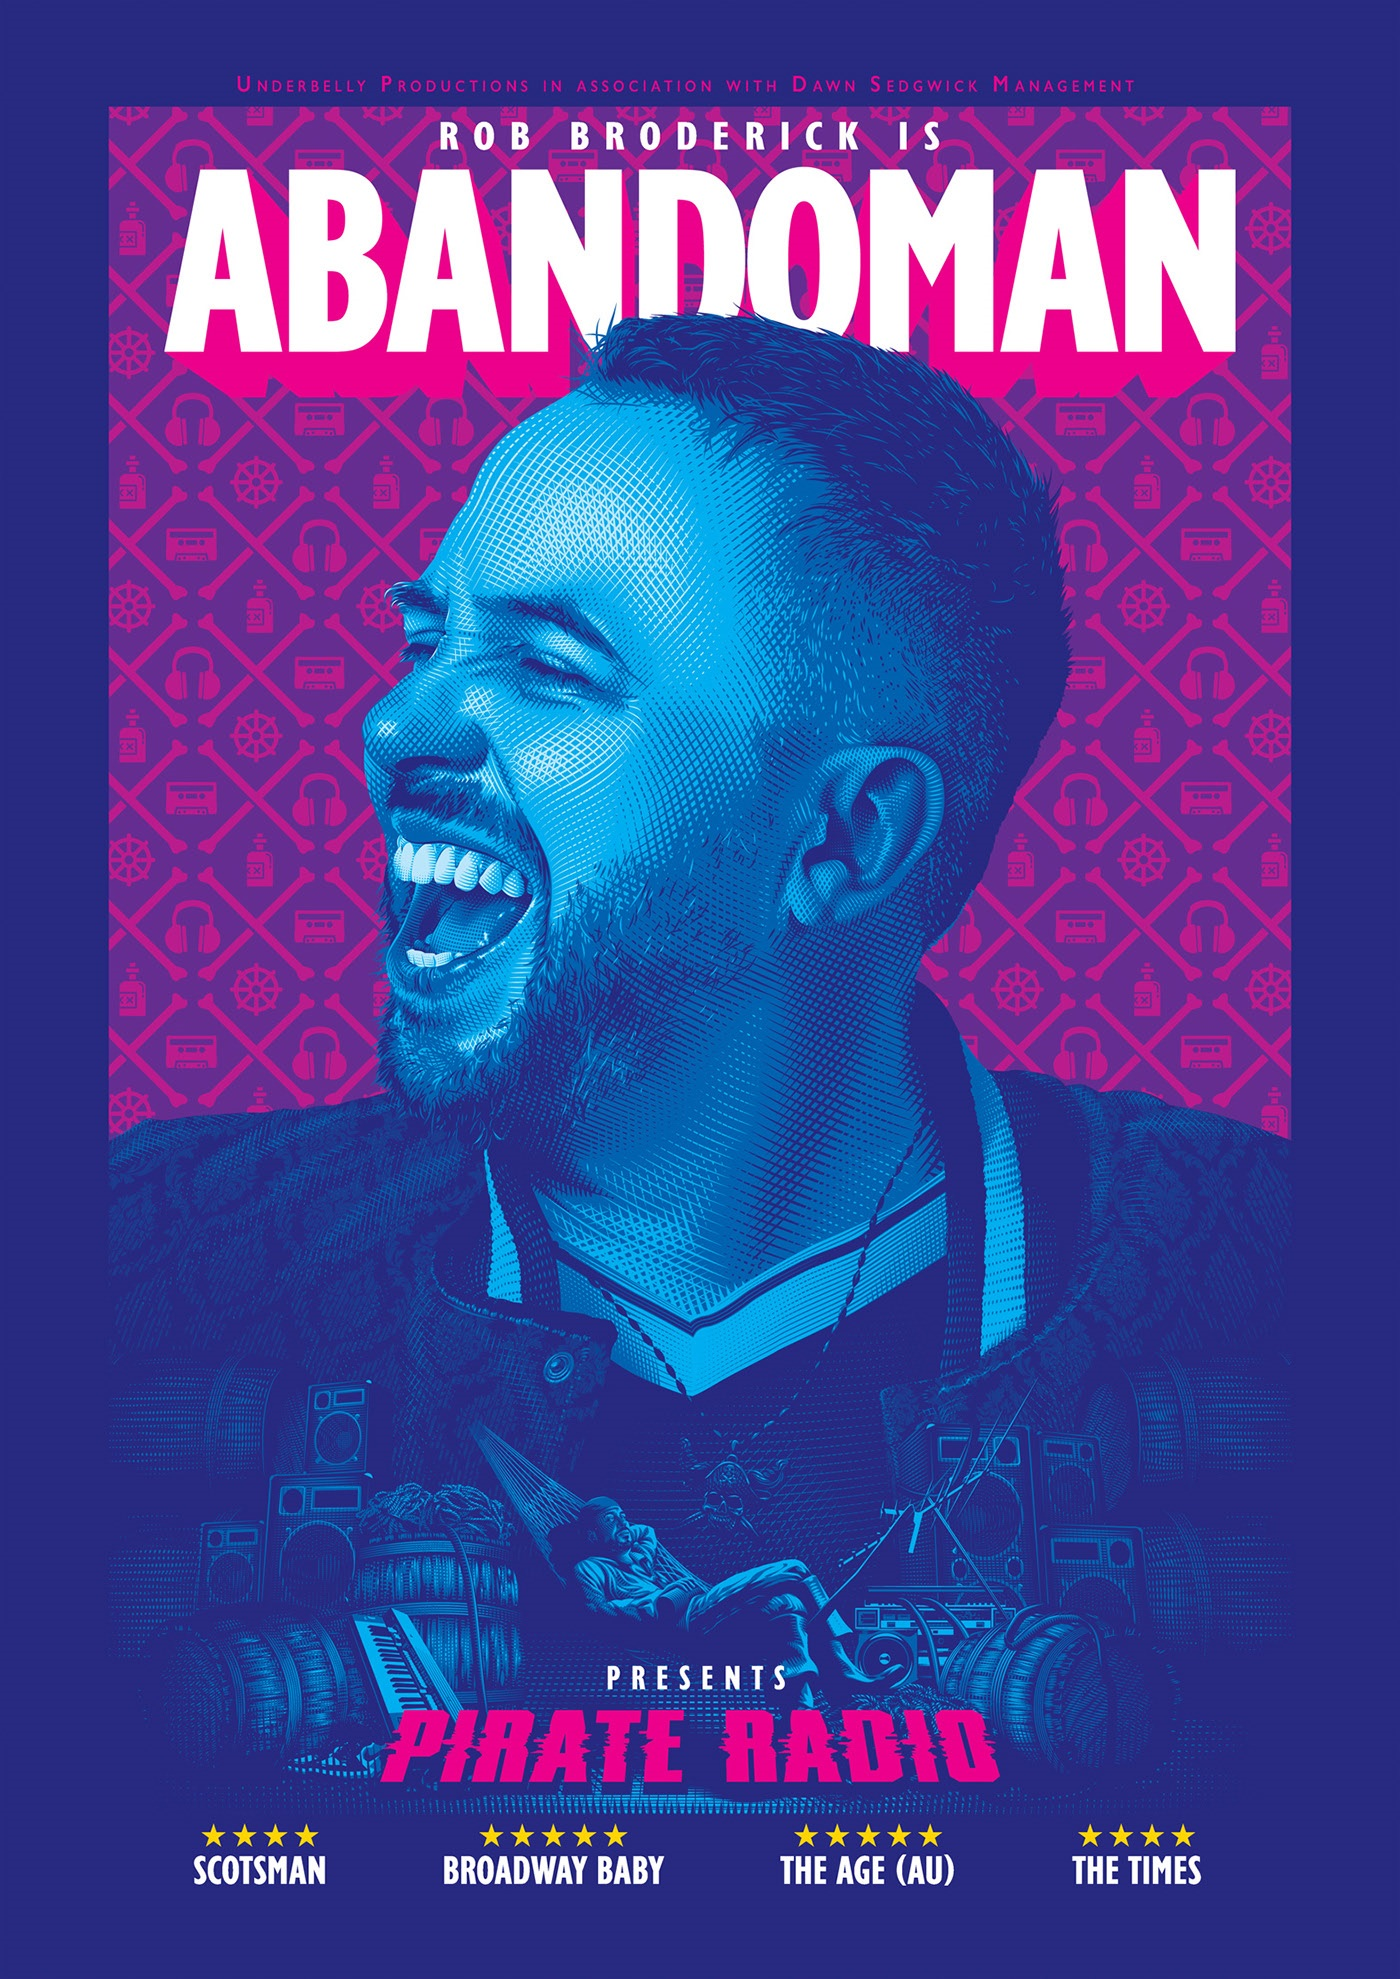 poster design portrait illustration abandoman